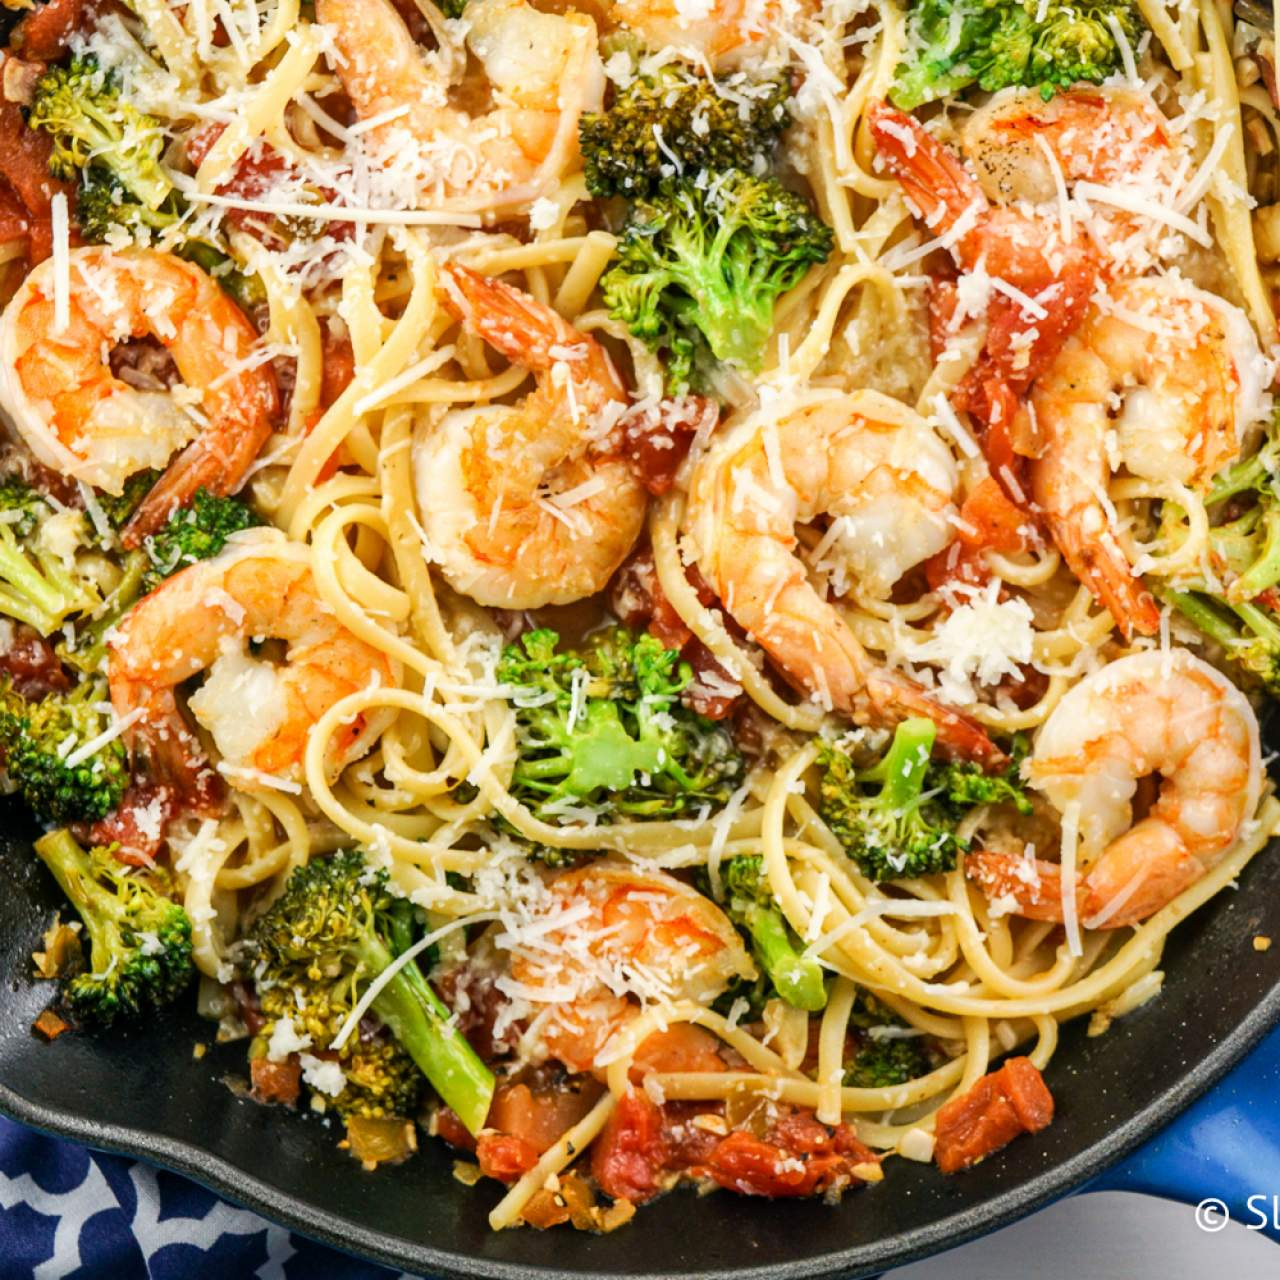 Lemon and Broccoli Pasta with Shrimp